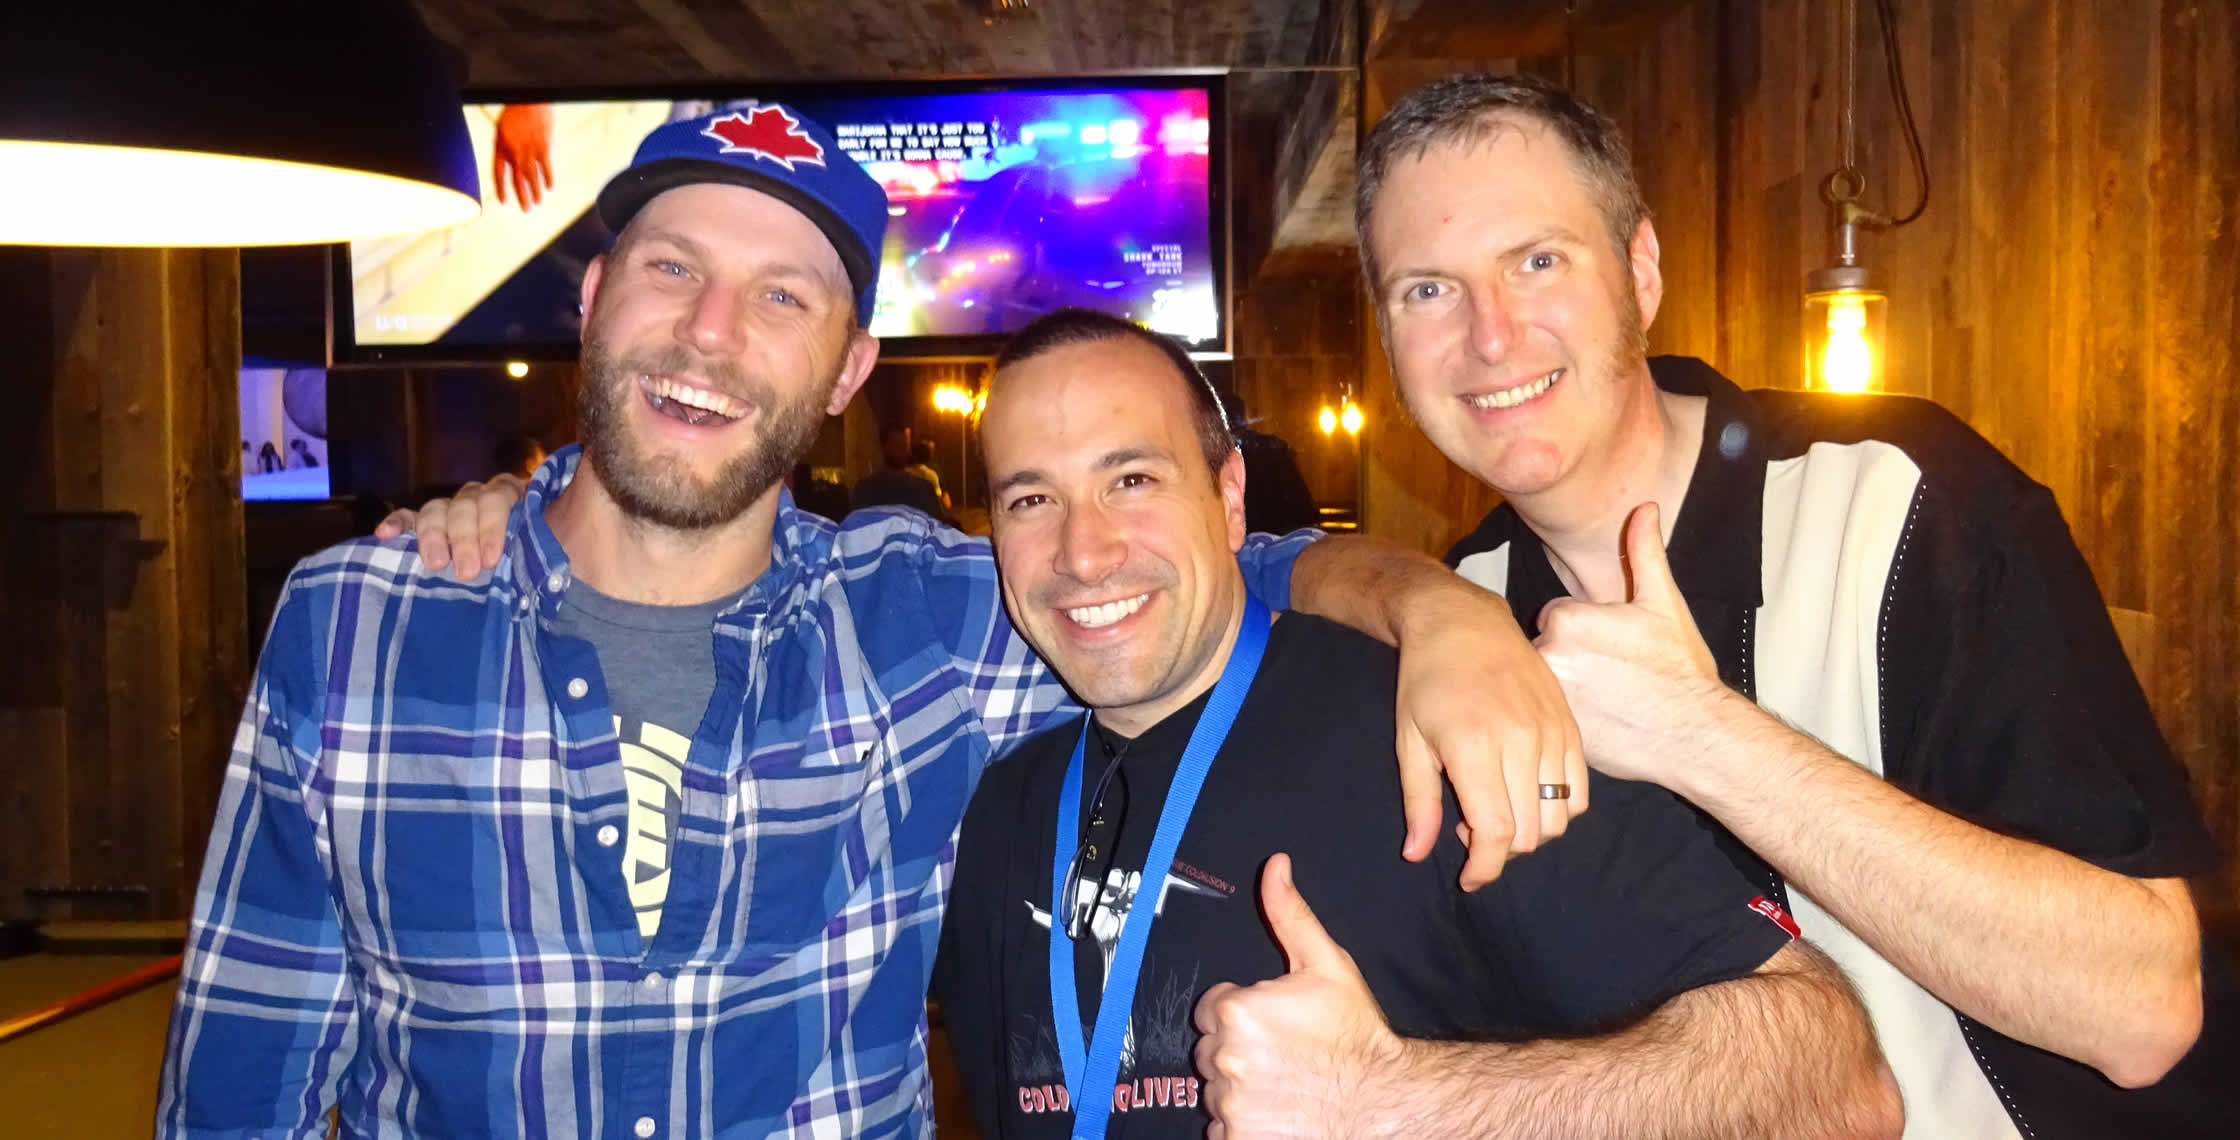 Ben Nadel at cf.Objective() 2014 (Bloomington, MN) with: Matt Vickers and Christian Ready